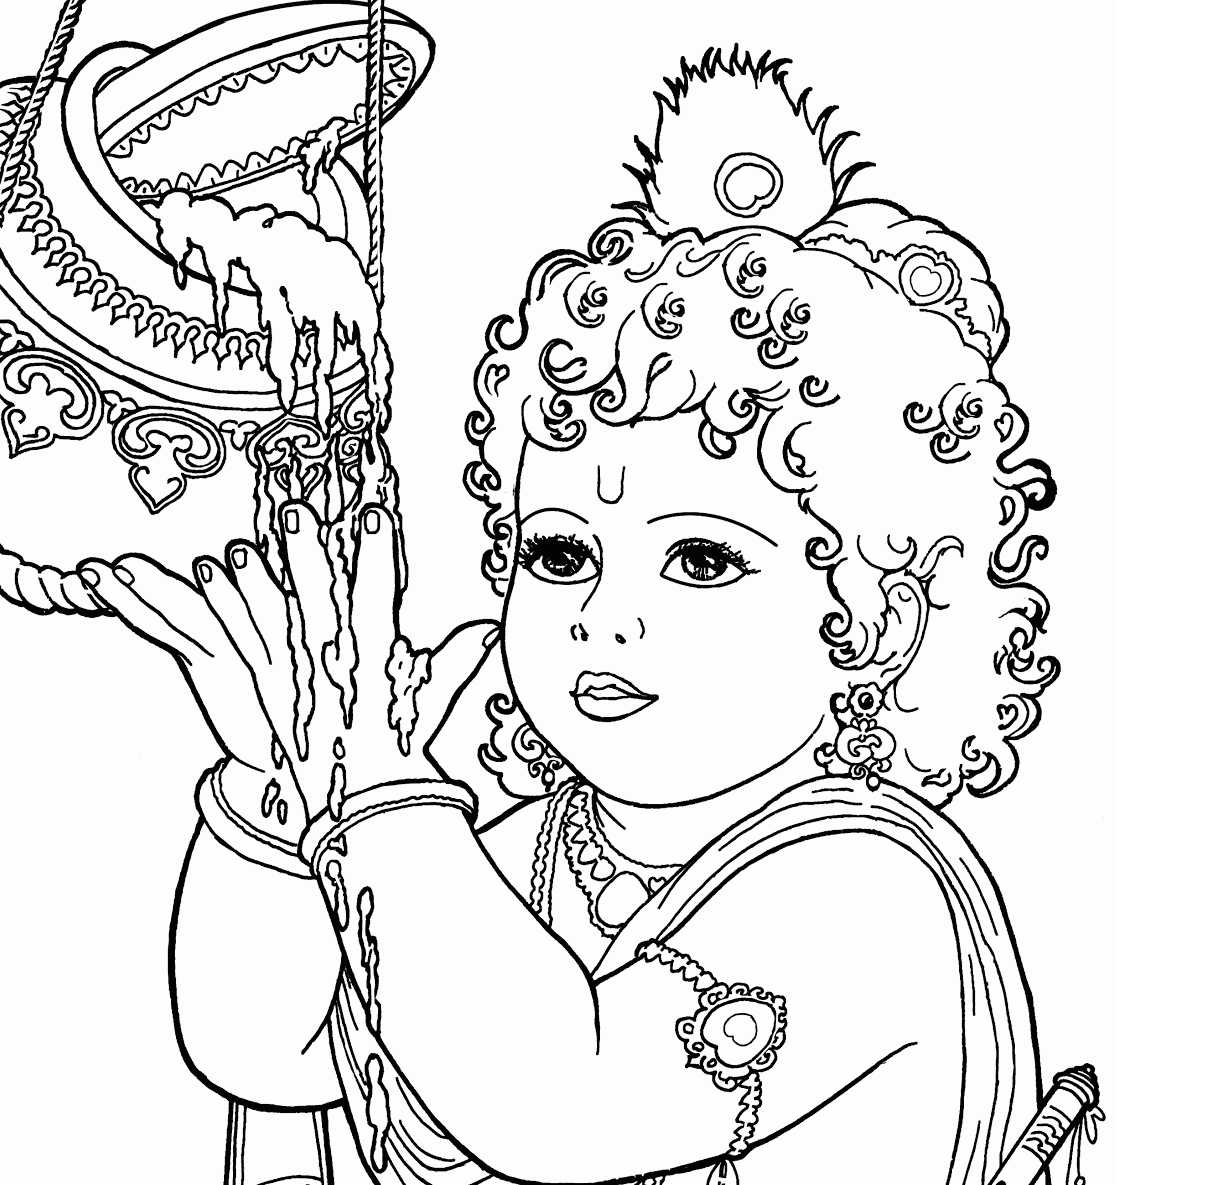 coloring pages of little krishna lord krishna the slayer of kalia naag coloring pages krishna pages of coloring little